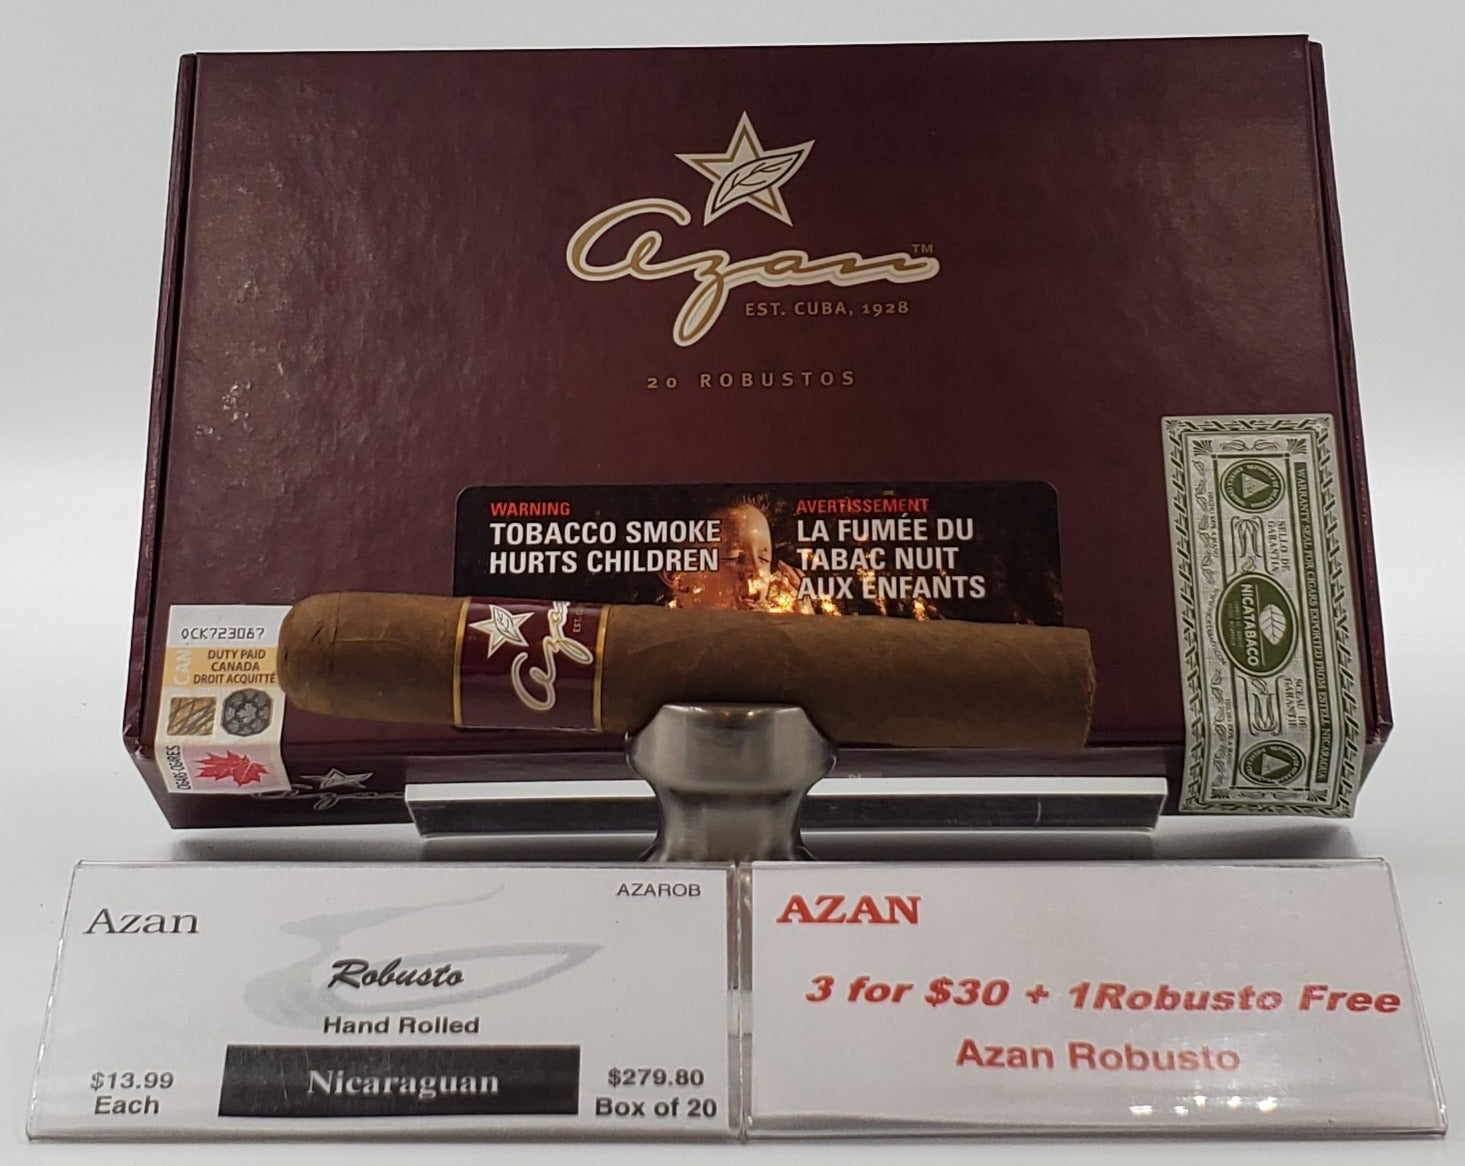 3 AZAN Nicaraguan Robustos for $30.00 & the 4th is a Penny!..Sorry NOT eligible for free mail order shipping. Free Local Home Delivery Available.